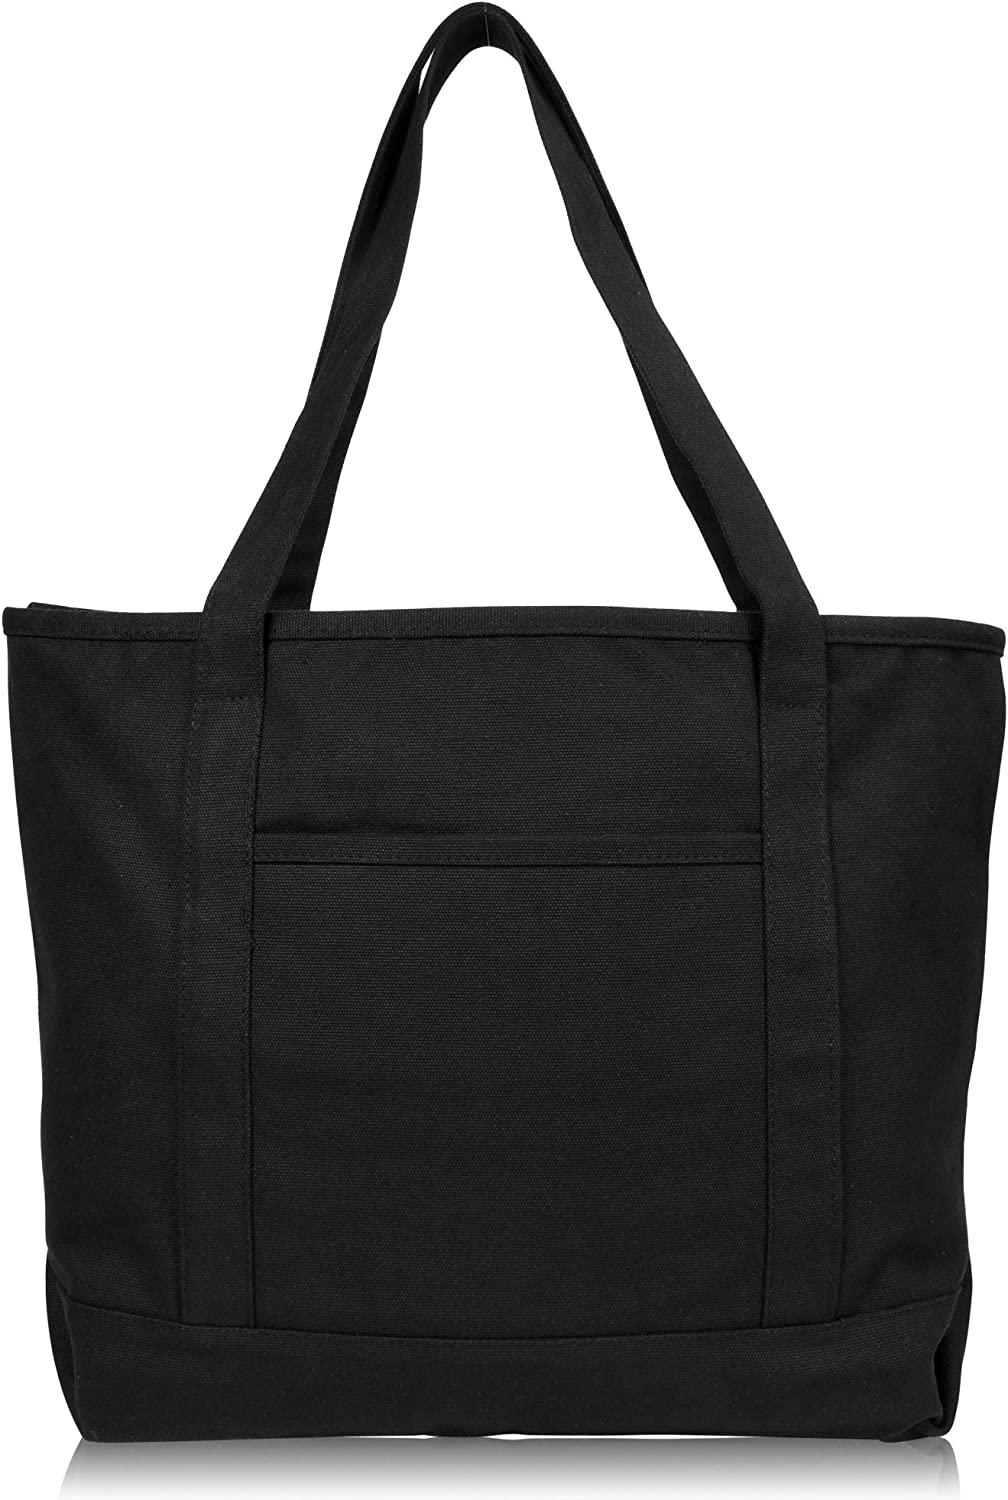 """DALIX 20"""" Solid Color Cotton Canvas Shopping Tote Bag in Black"""